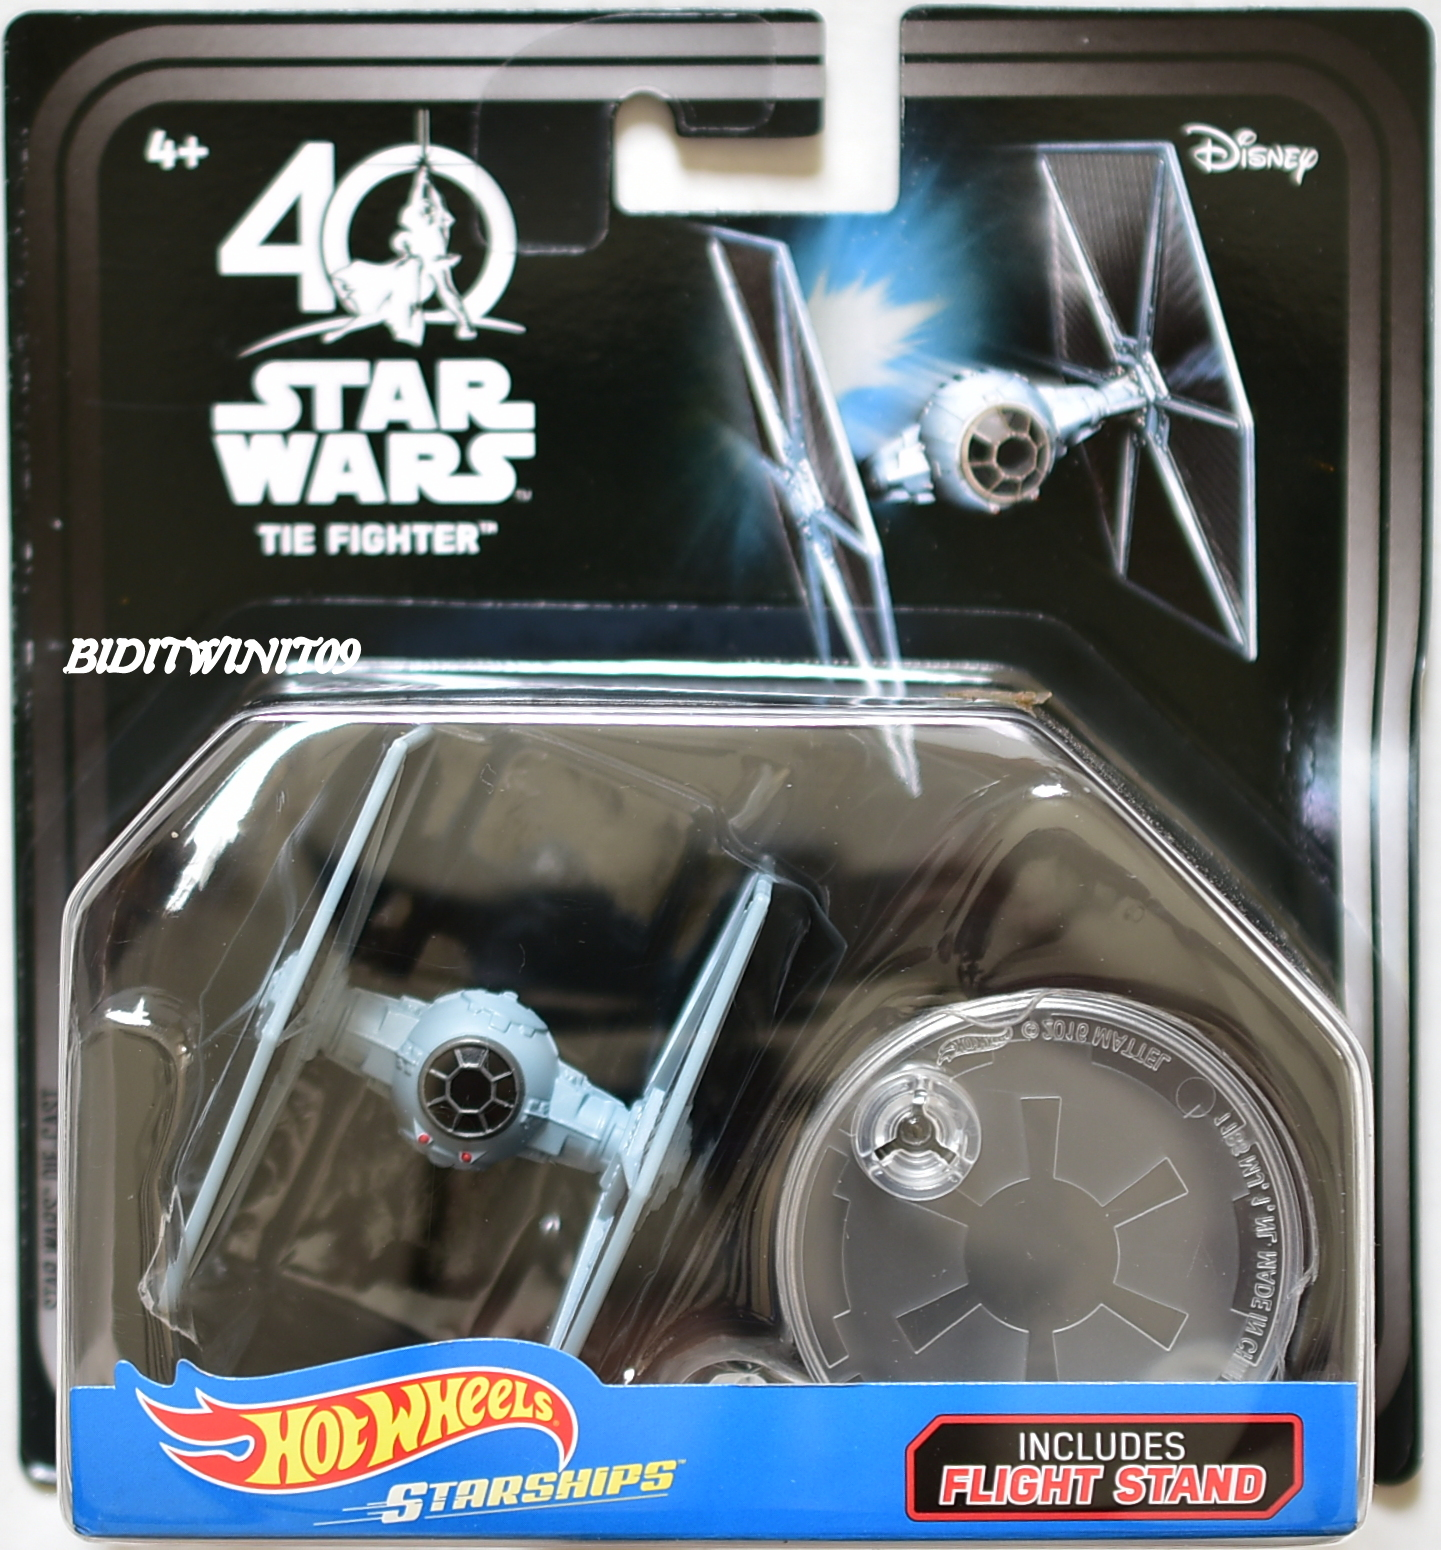 HOT WHEELS 2018 STAR WARS STARSHIPS 40TH ANNIVERSARY TIE FIGHTER